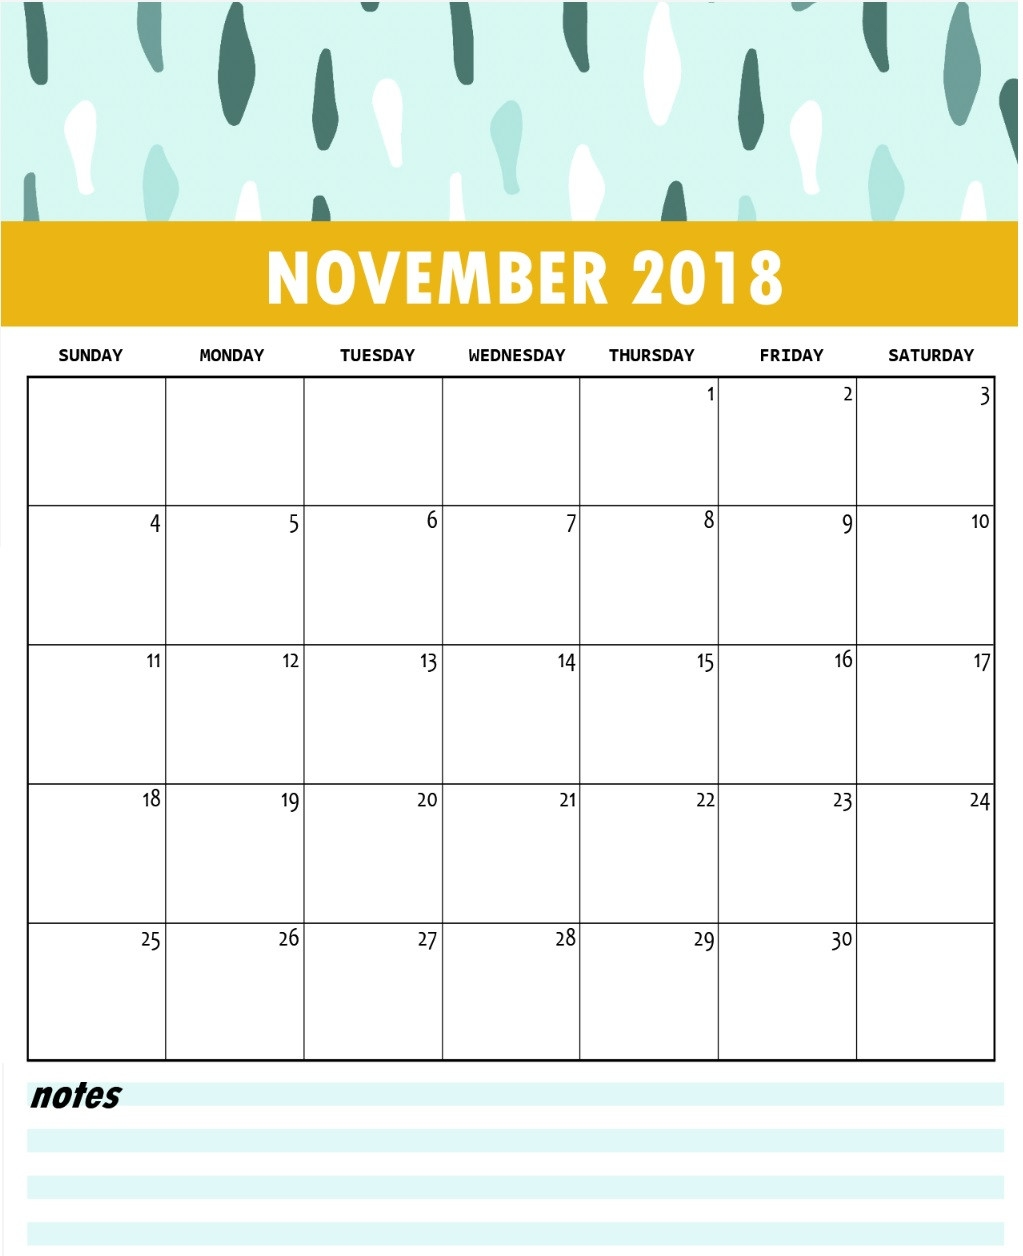 november 2018 calendar pdf excel word download when is the next November 2018 Excel Calendar erdferdf